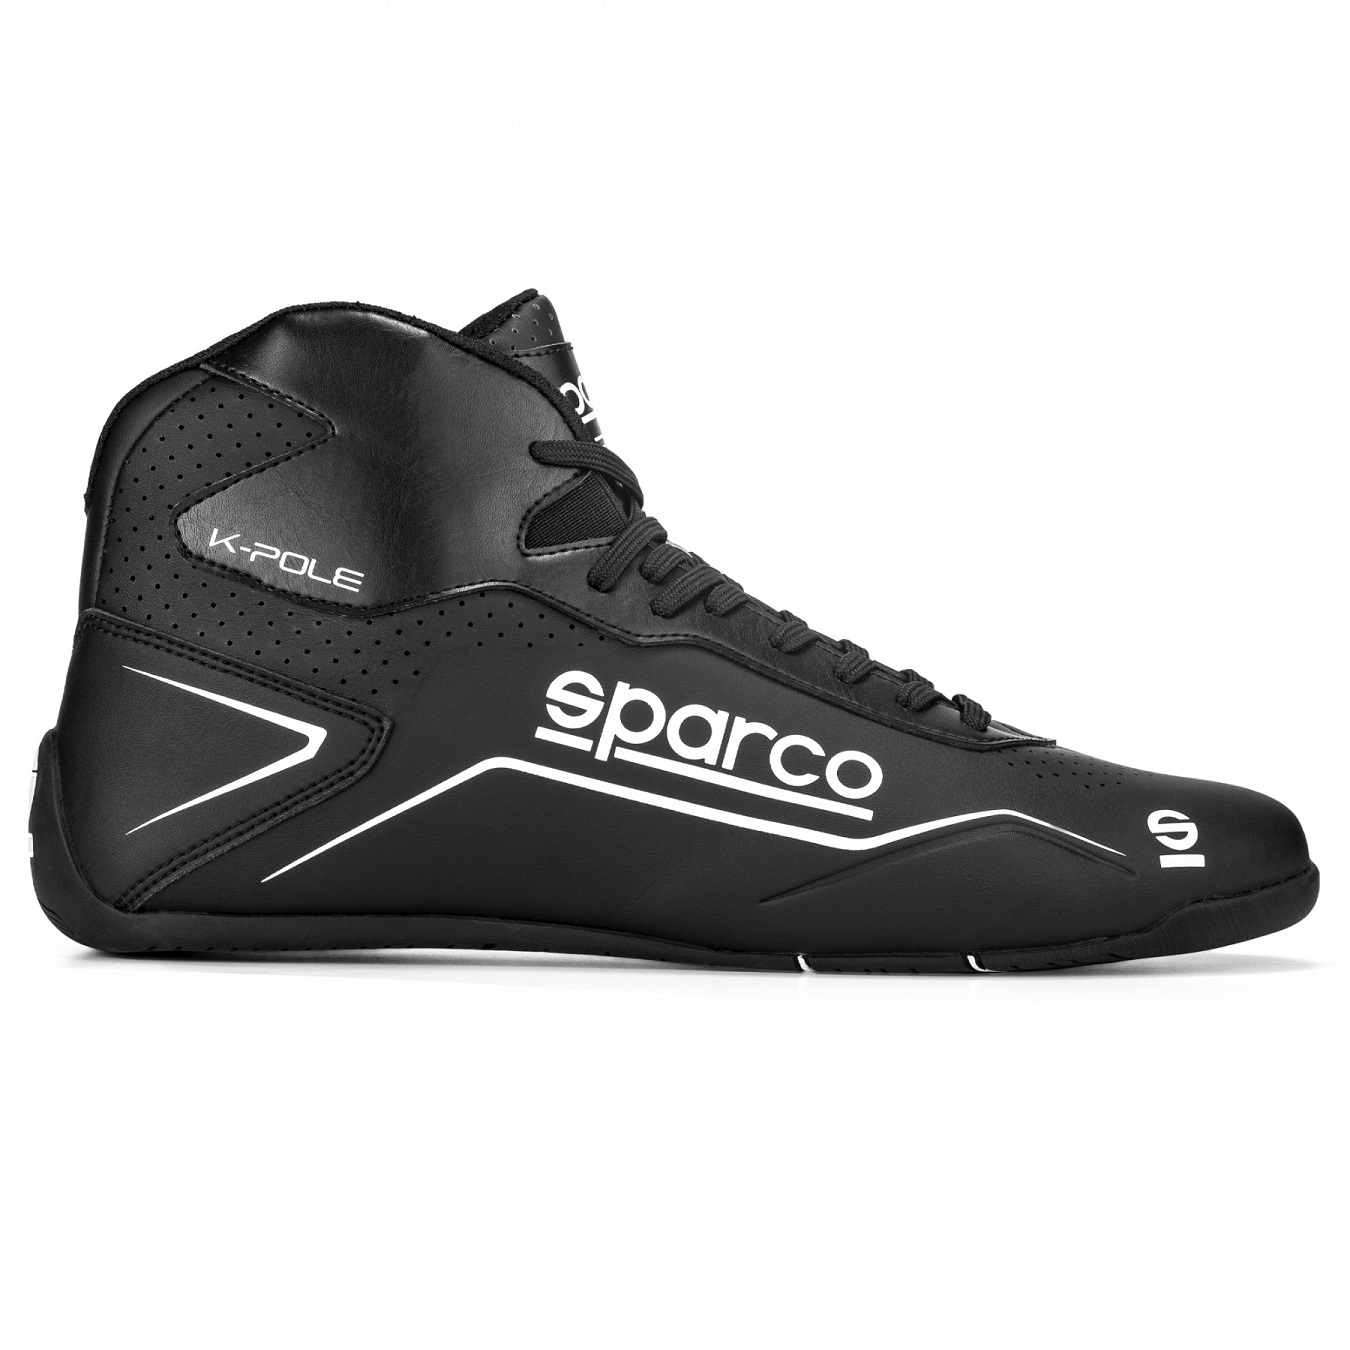 Sparco Chaussures Kart K-Pole Taille 43 Noir//B